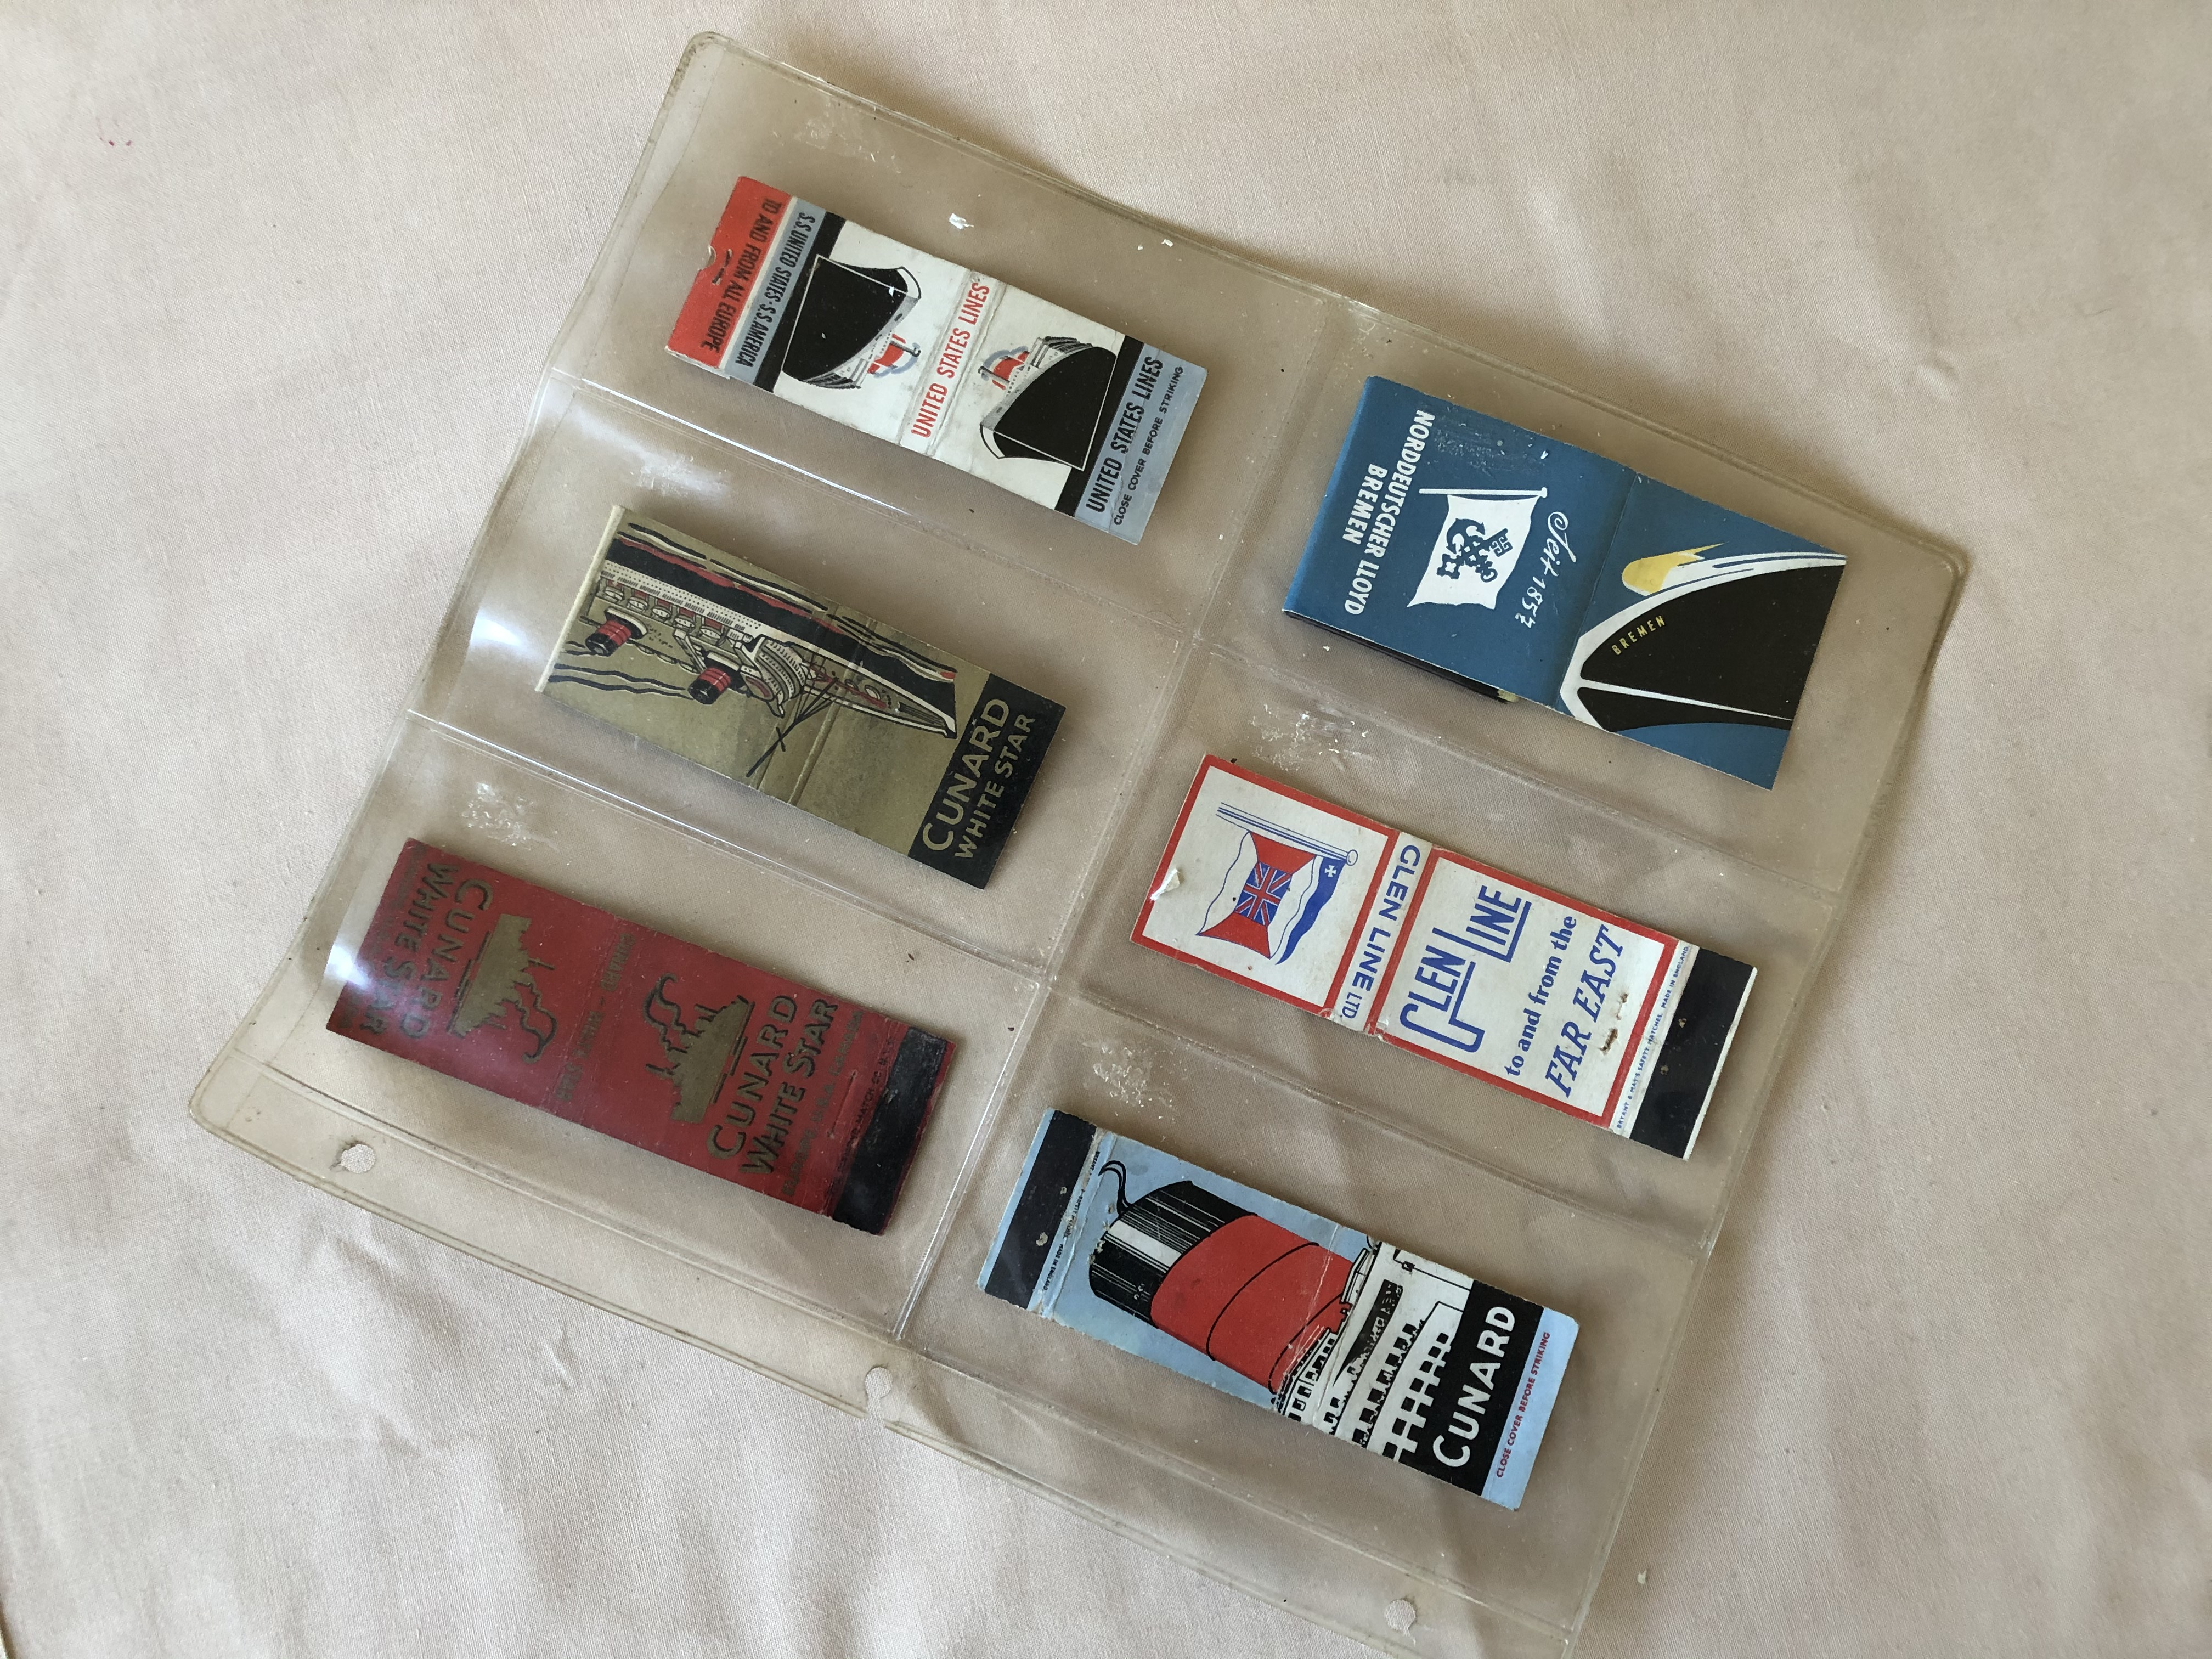 SIX VERY OLD CIGARETTE MATCH COVERS FROM VARIOUS OLD SHIPPING LINE COMPANIES